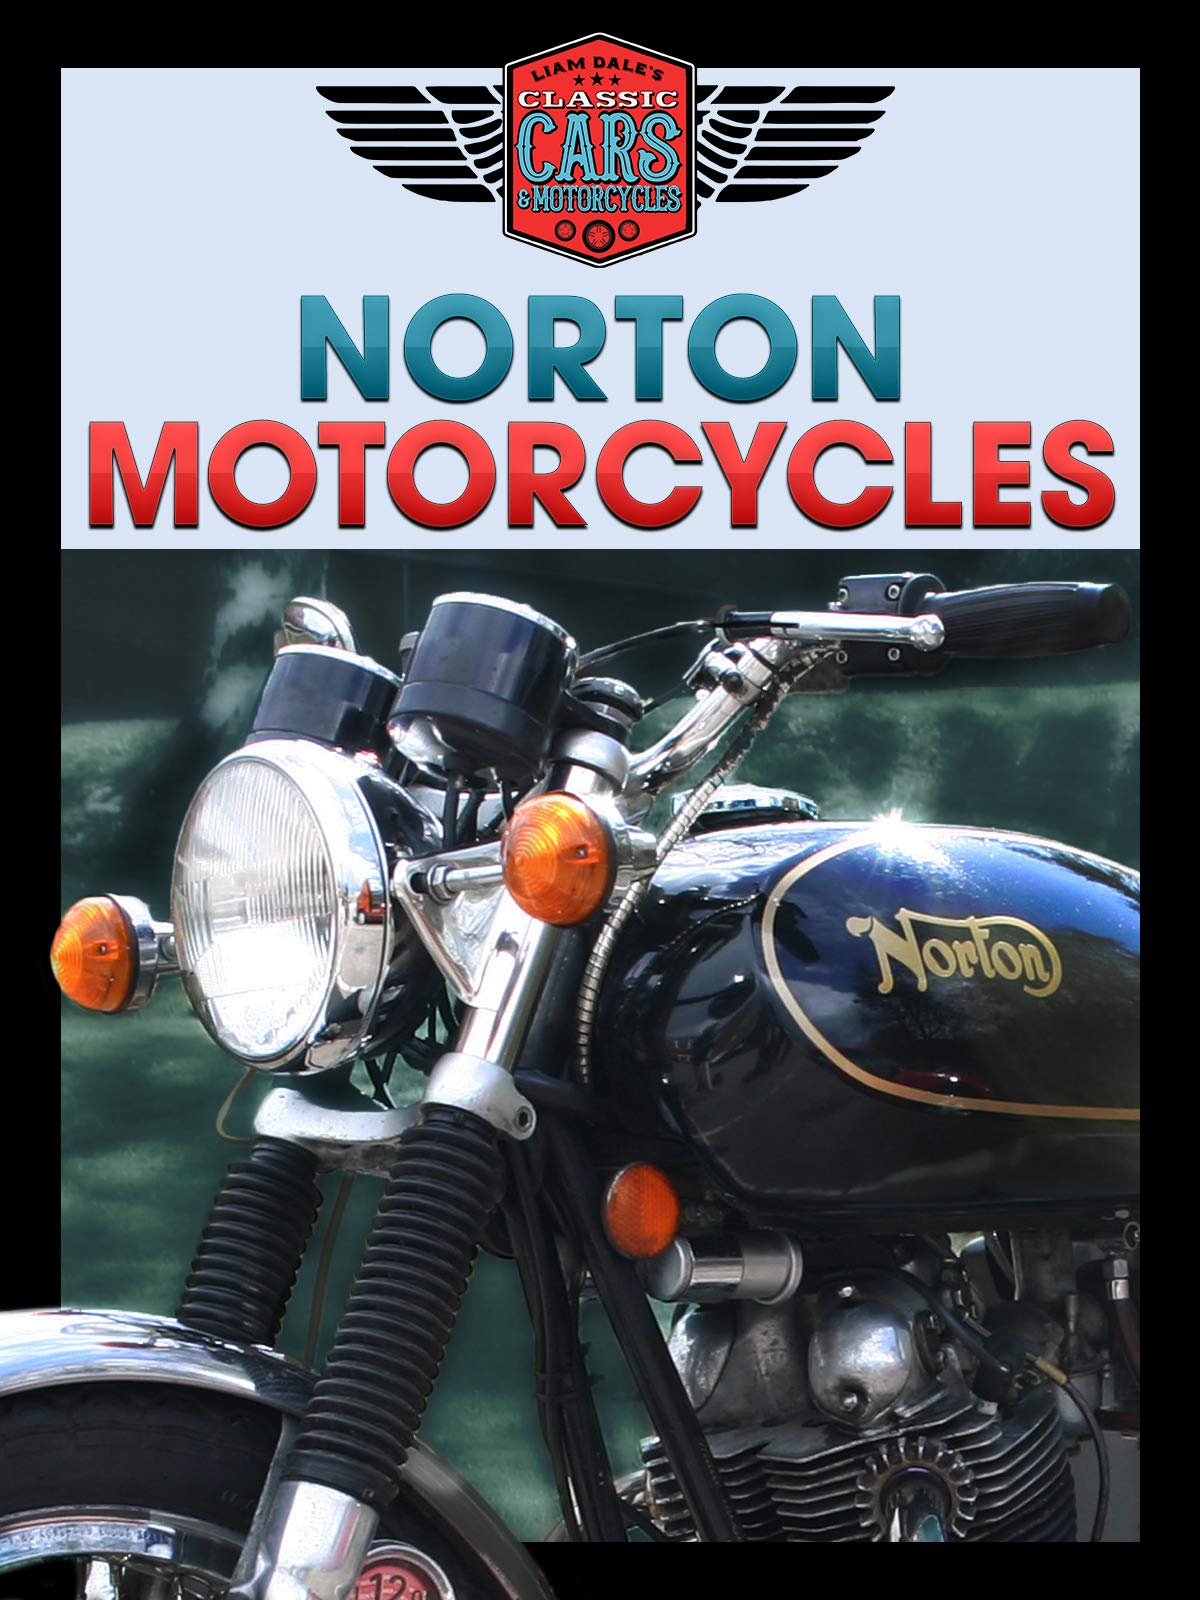 Norton Motorcycles: Liam Dale's Classic Cars & Motorcycles